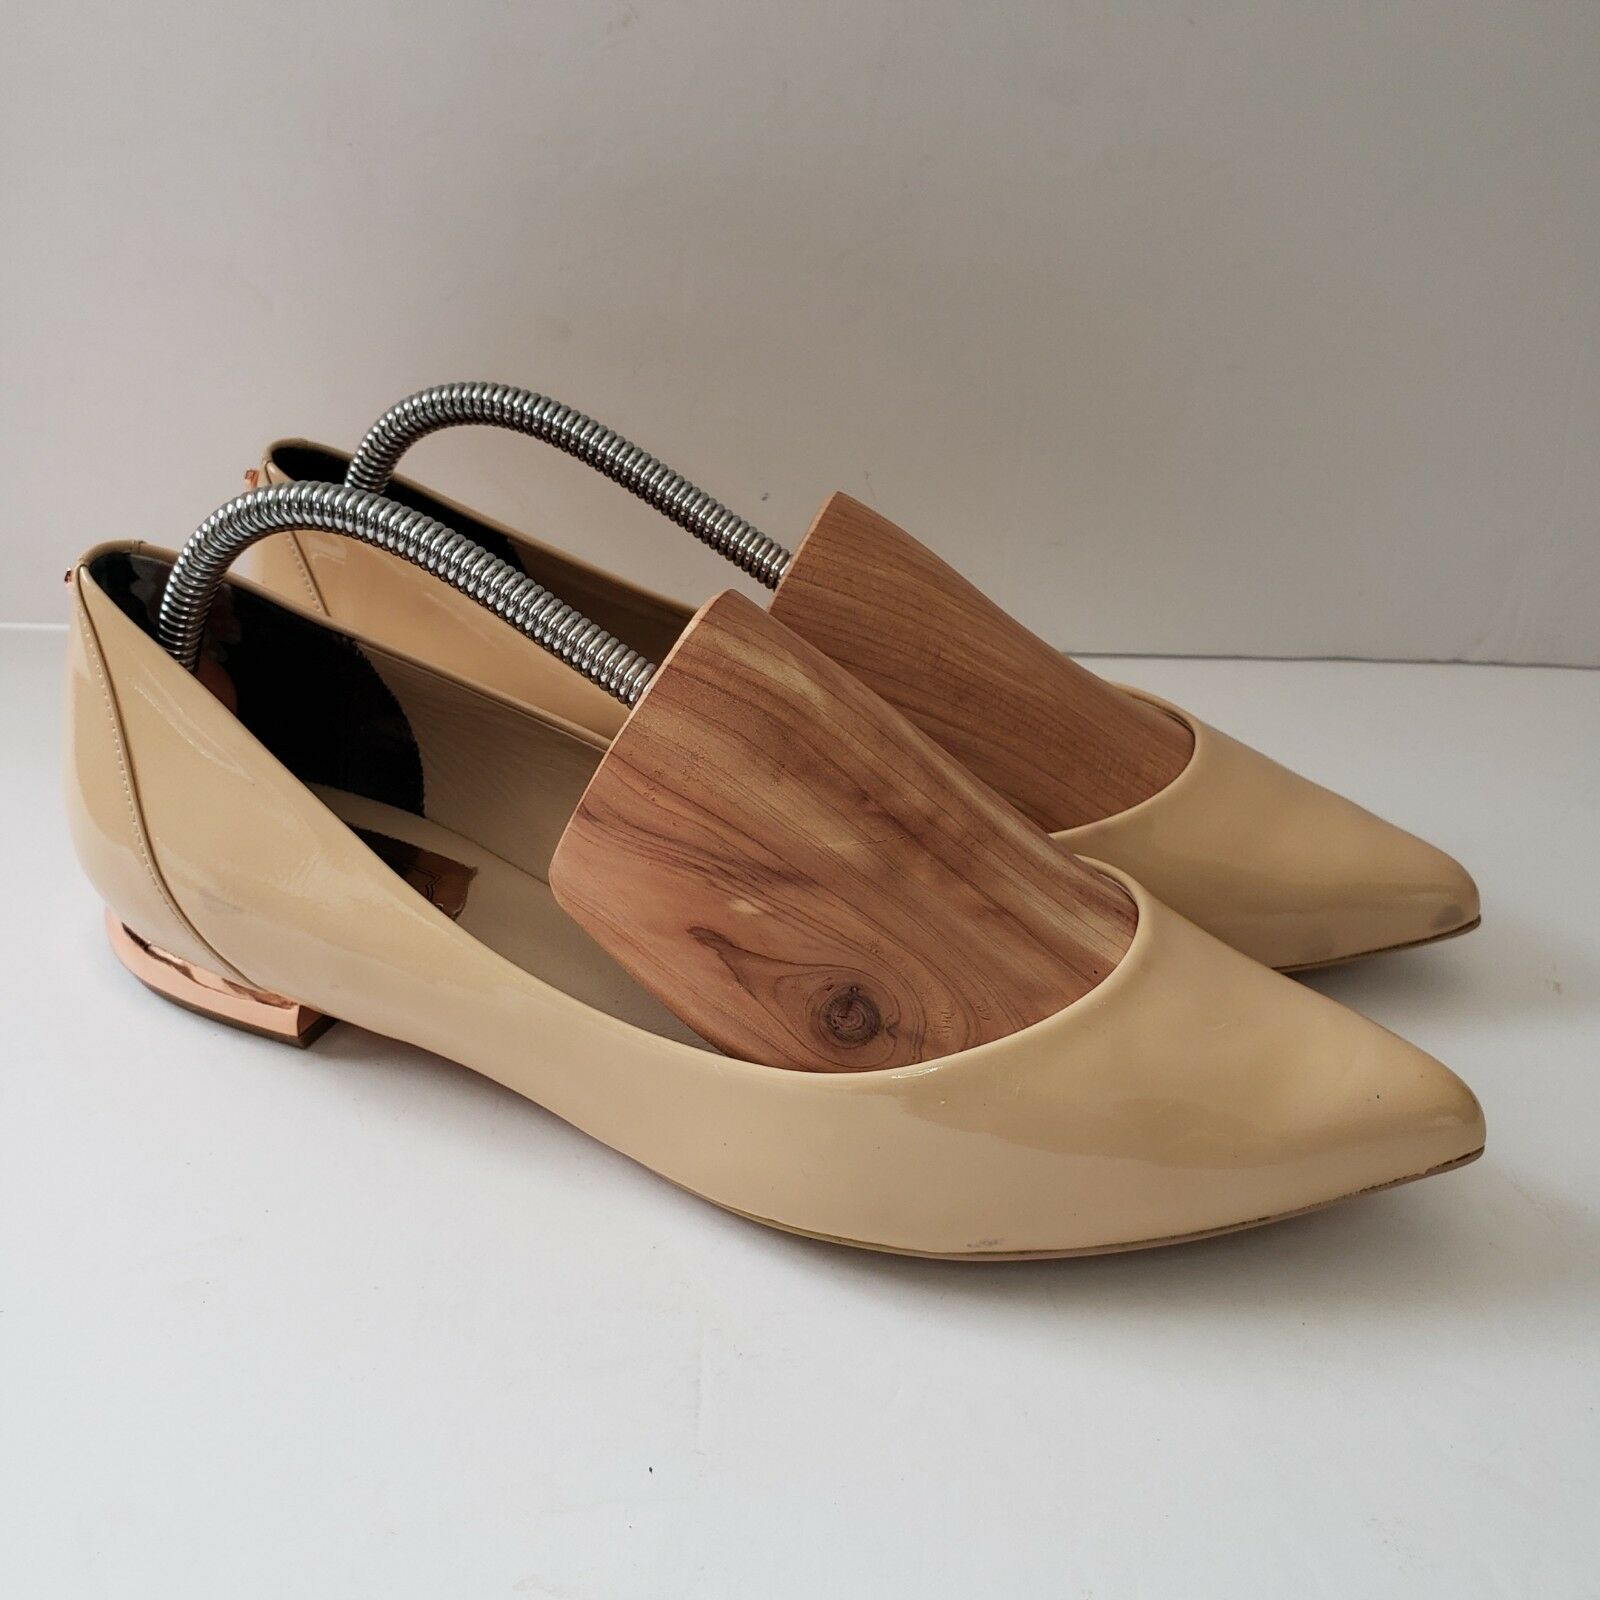 Ted Baker Izlar Womens 40 8.5 Nude Patent Leather Pointy Flats Metal Heel NEW